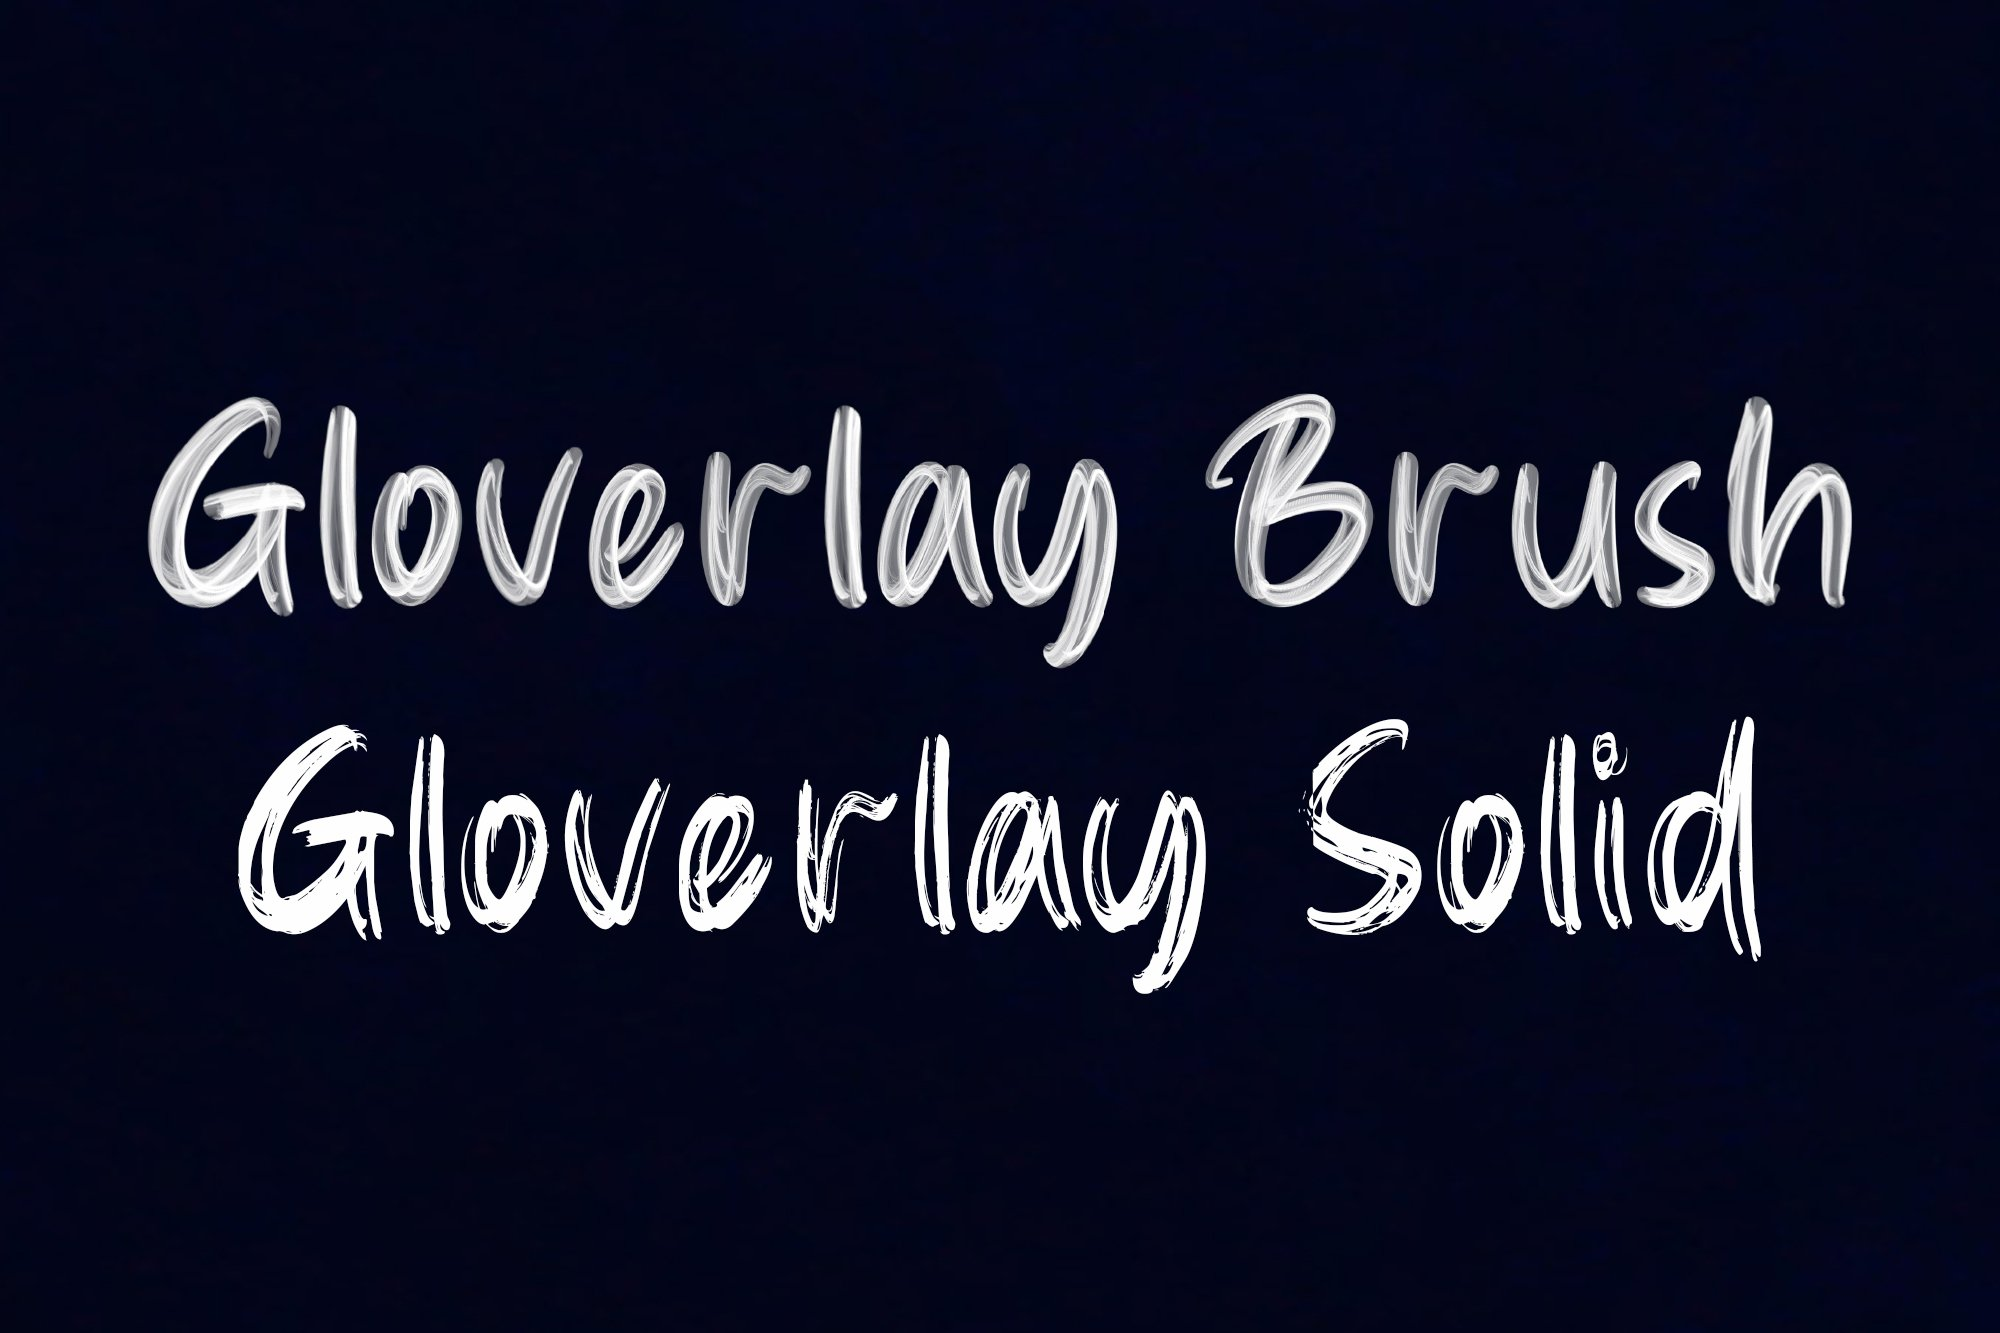 Gloverley SVG Font example image 3